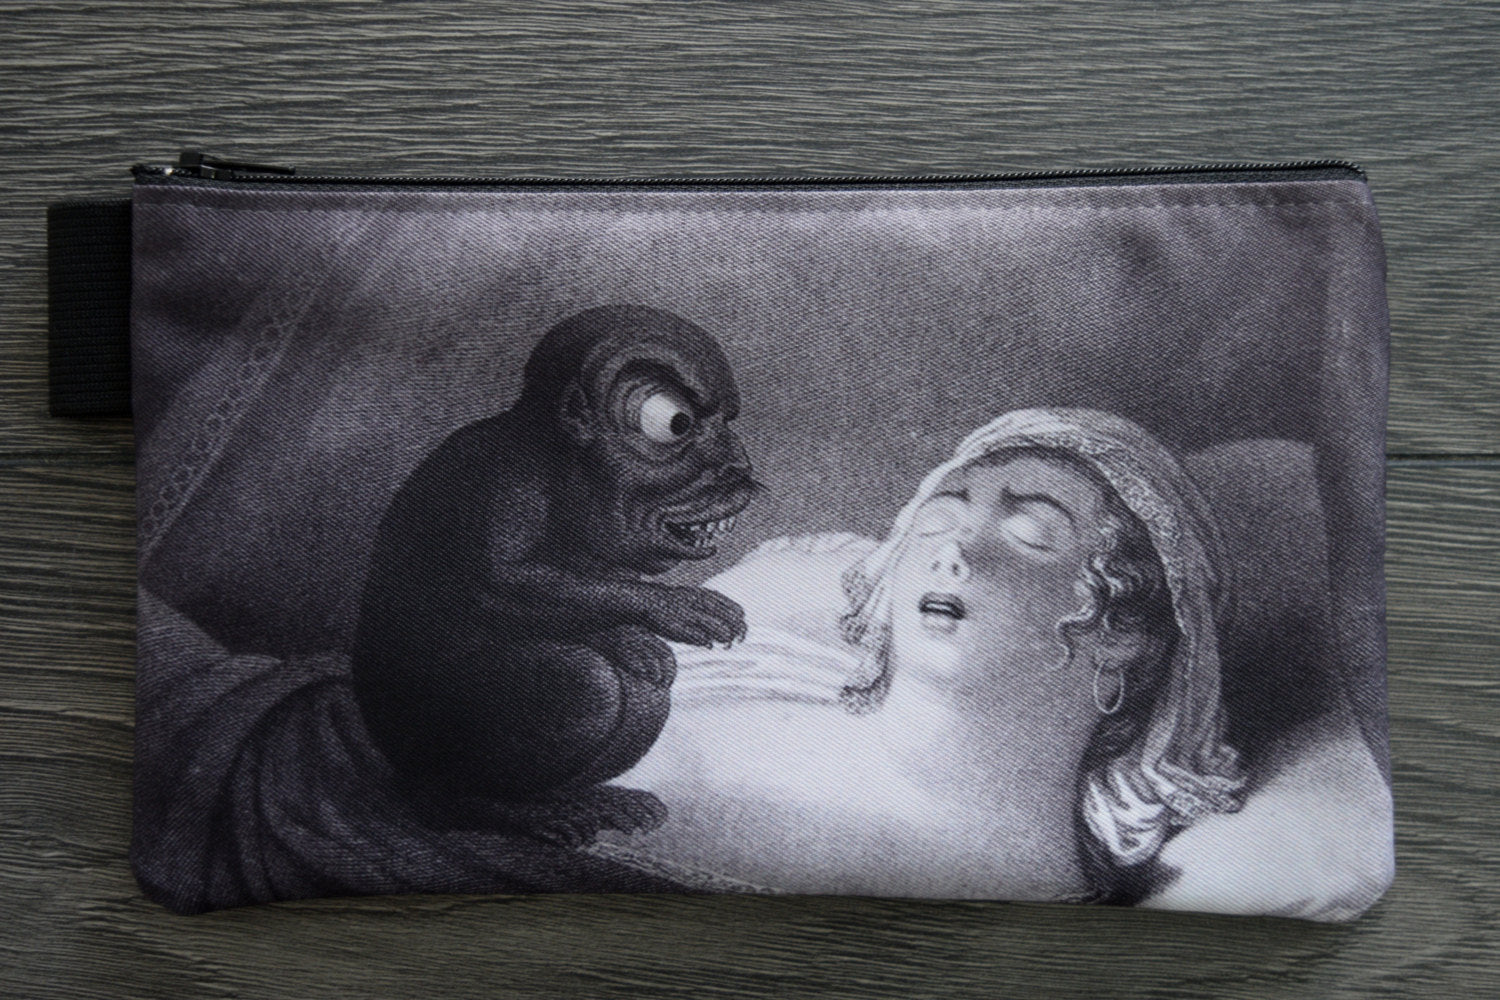 nightmare//cochemare - lined twill pencil case - double sided print - jean pierre simon, 1810